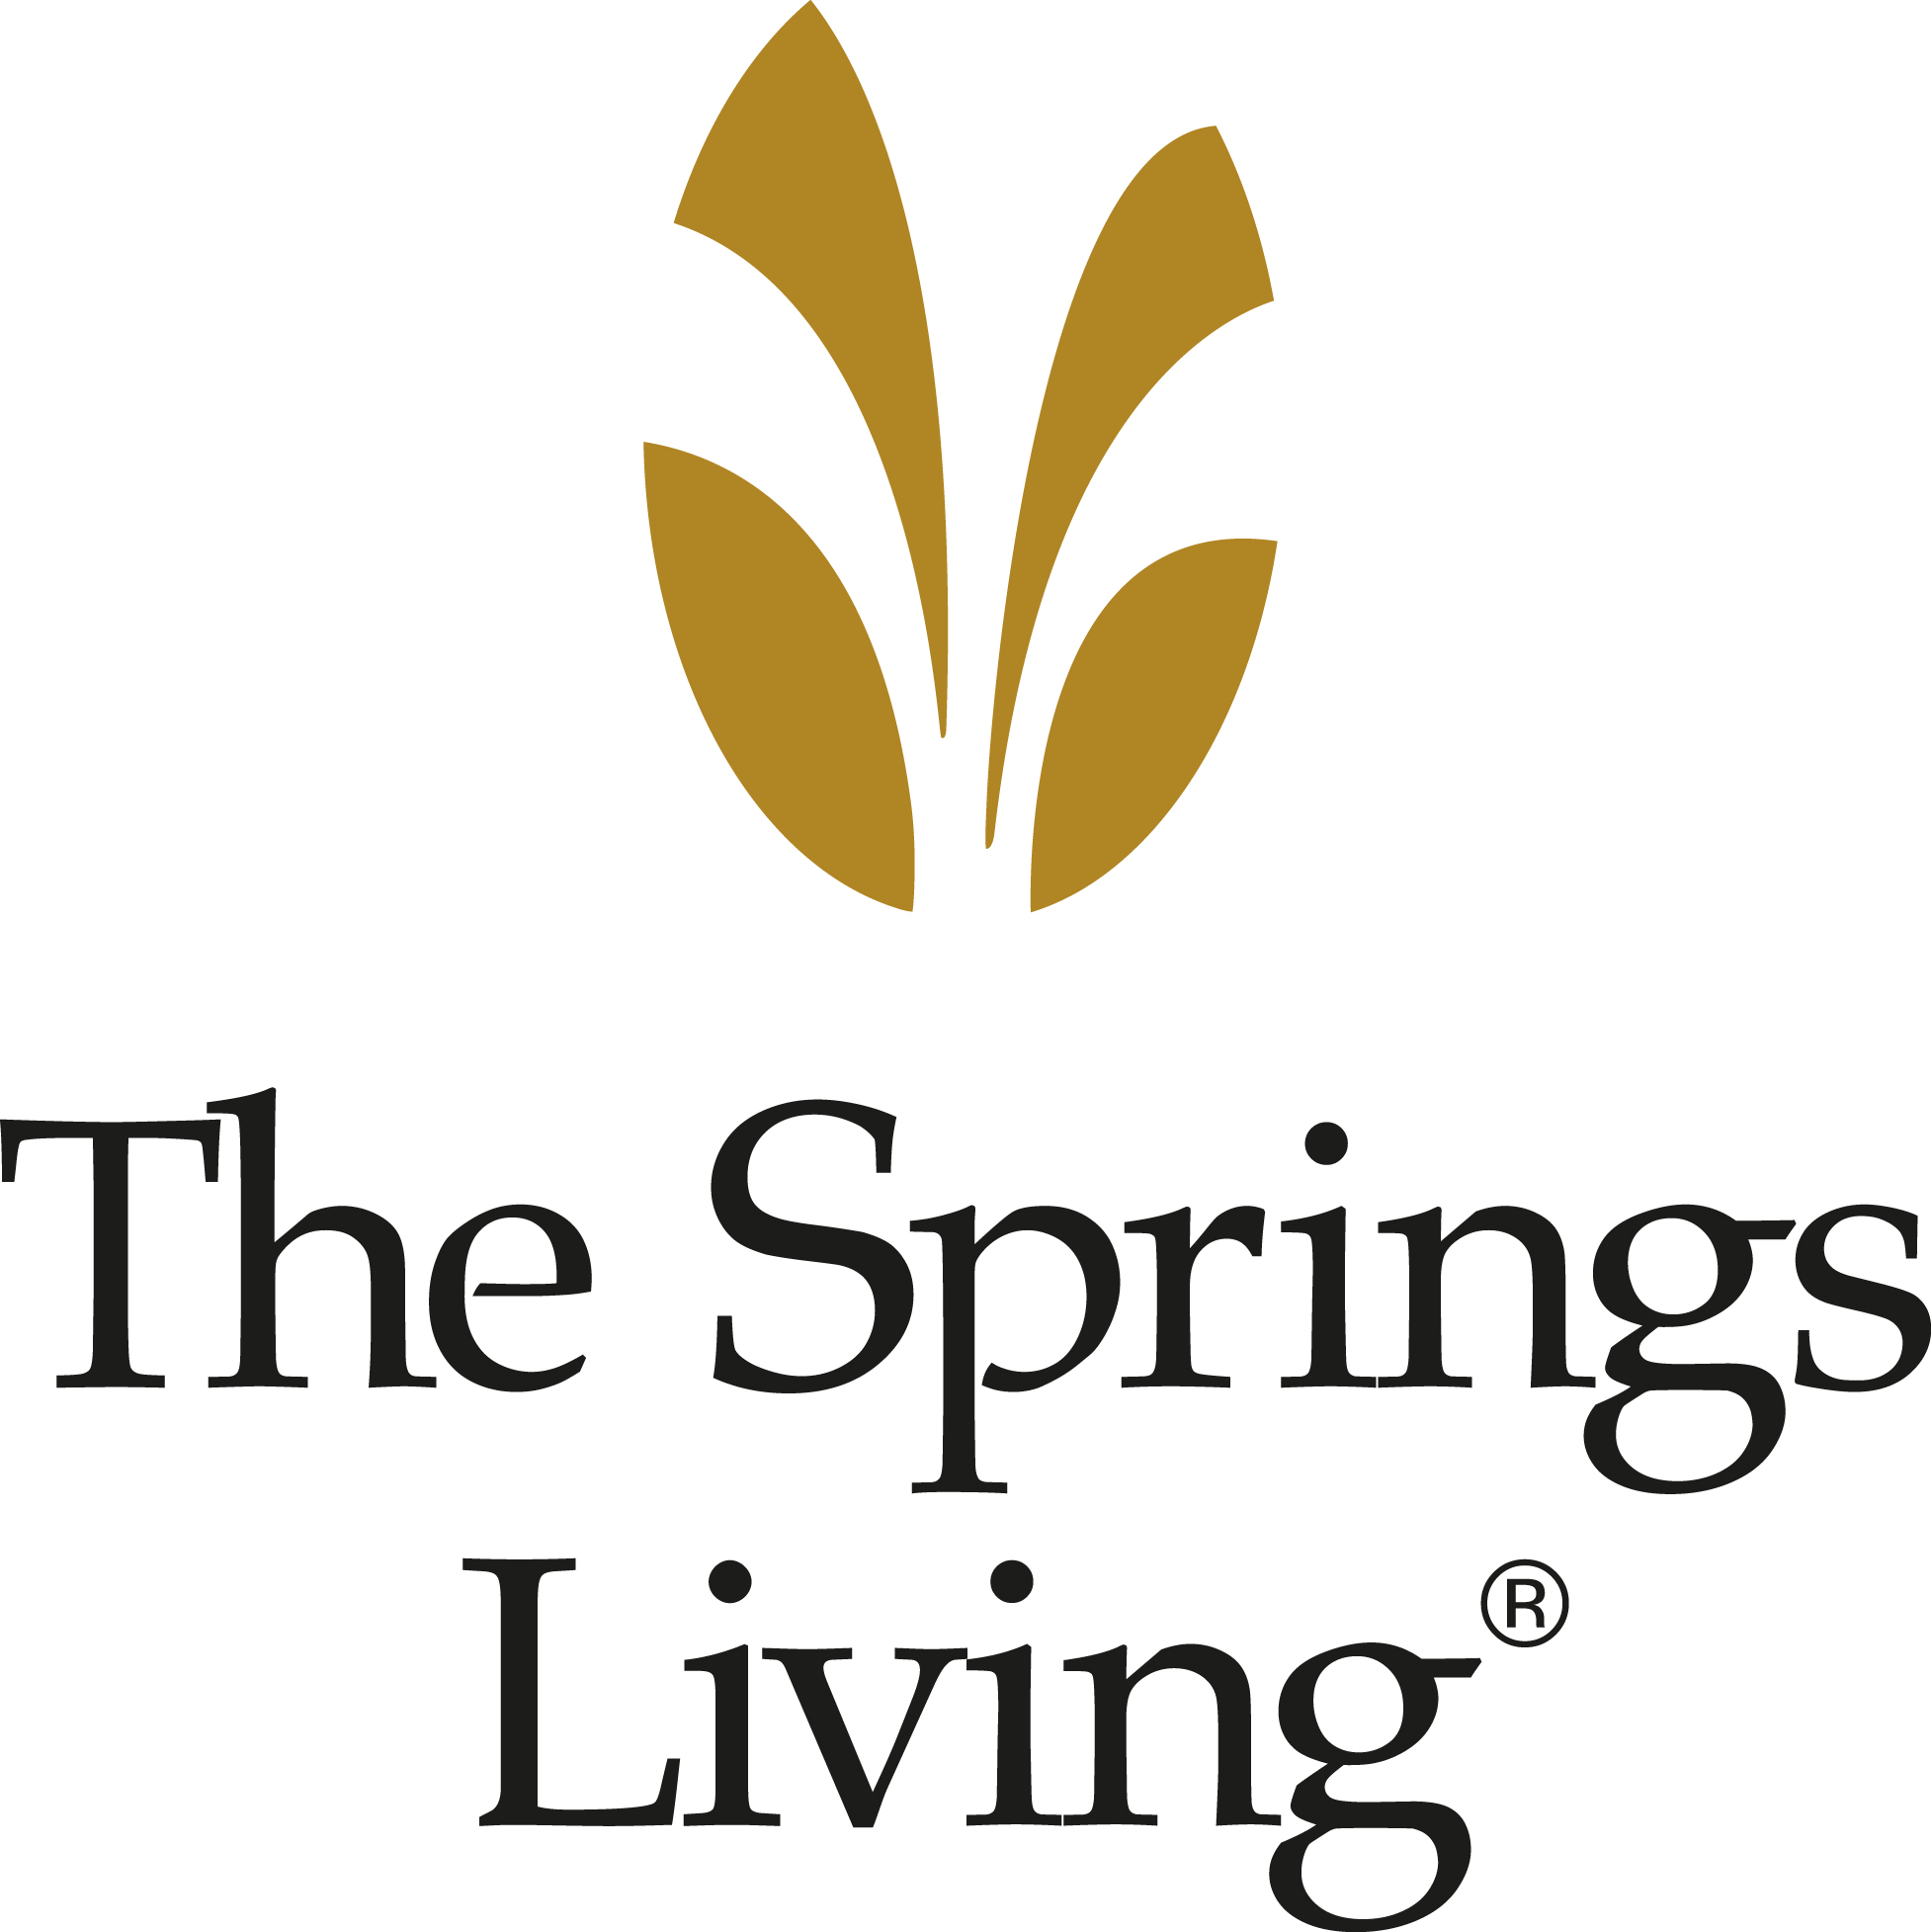 H. The Springs Living (Entertainment)